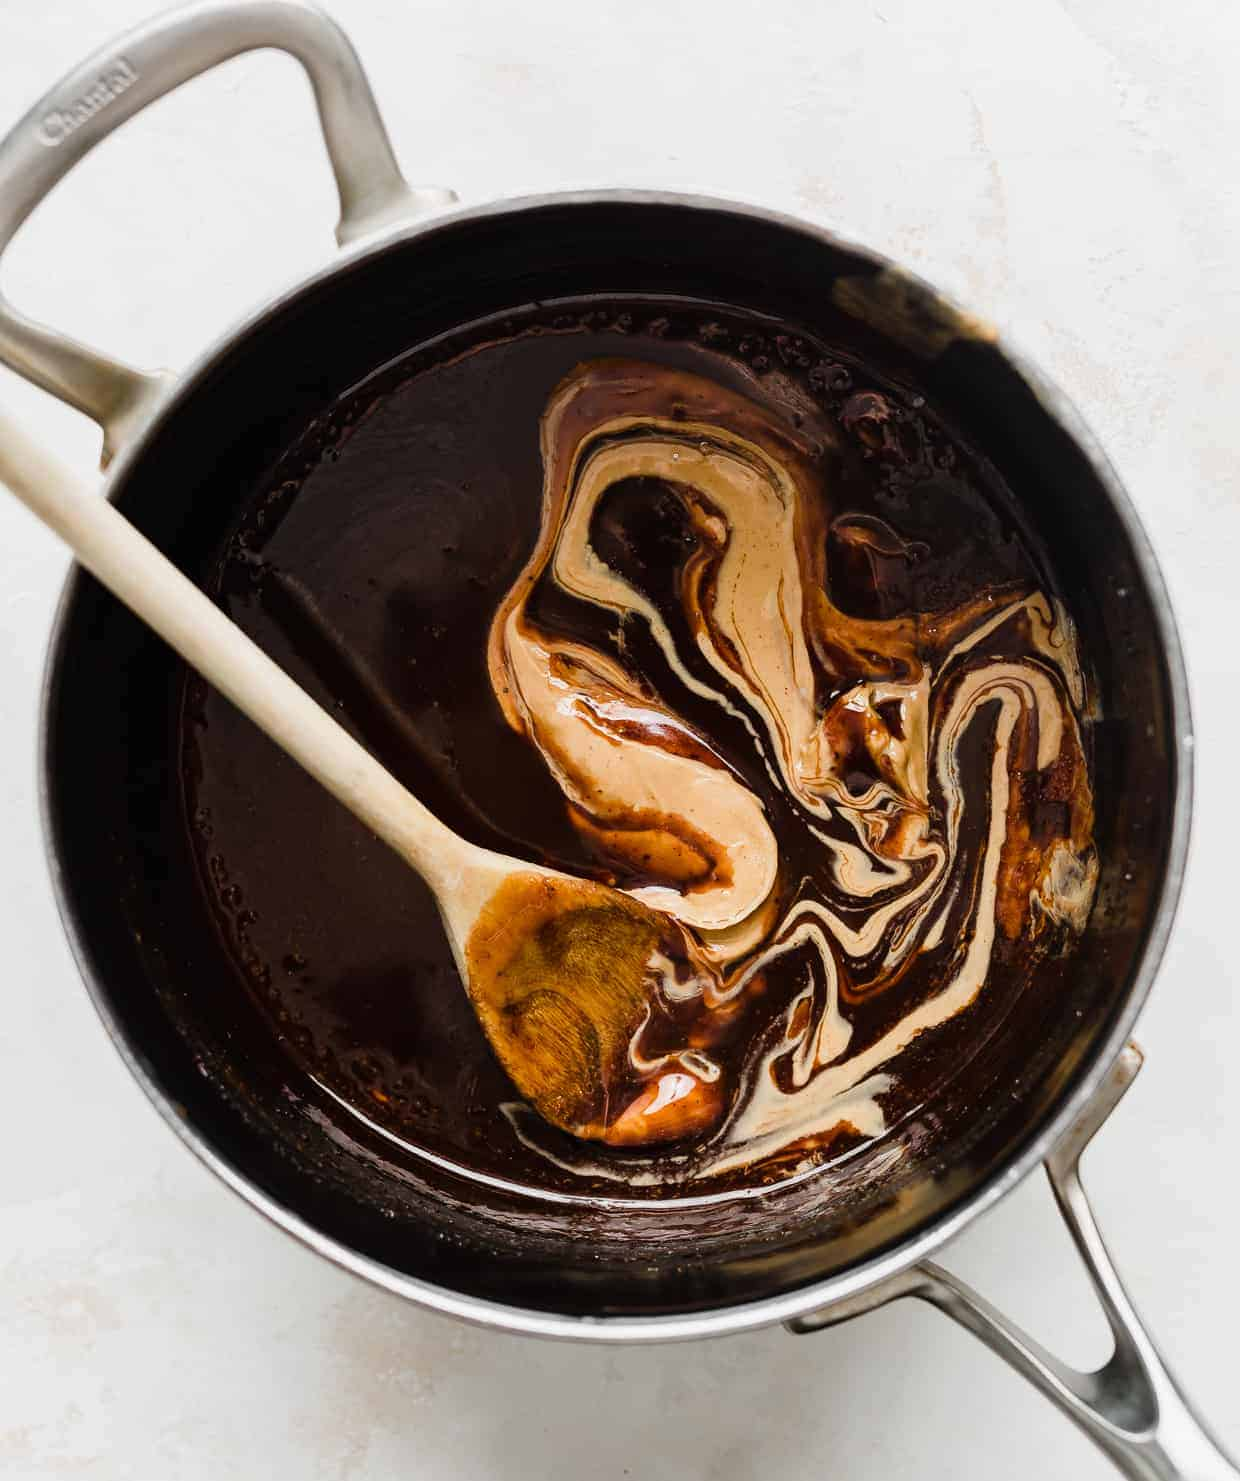 A saucepan with a peanut butter being mixed into a cocoa mixture.